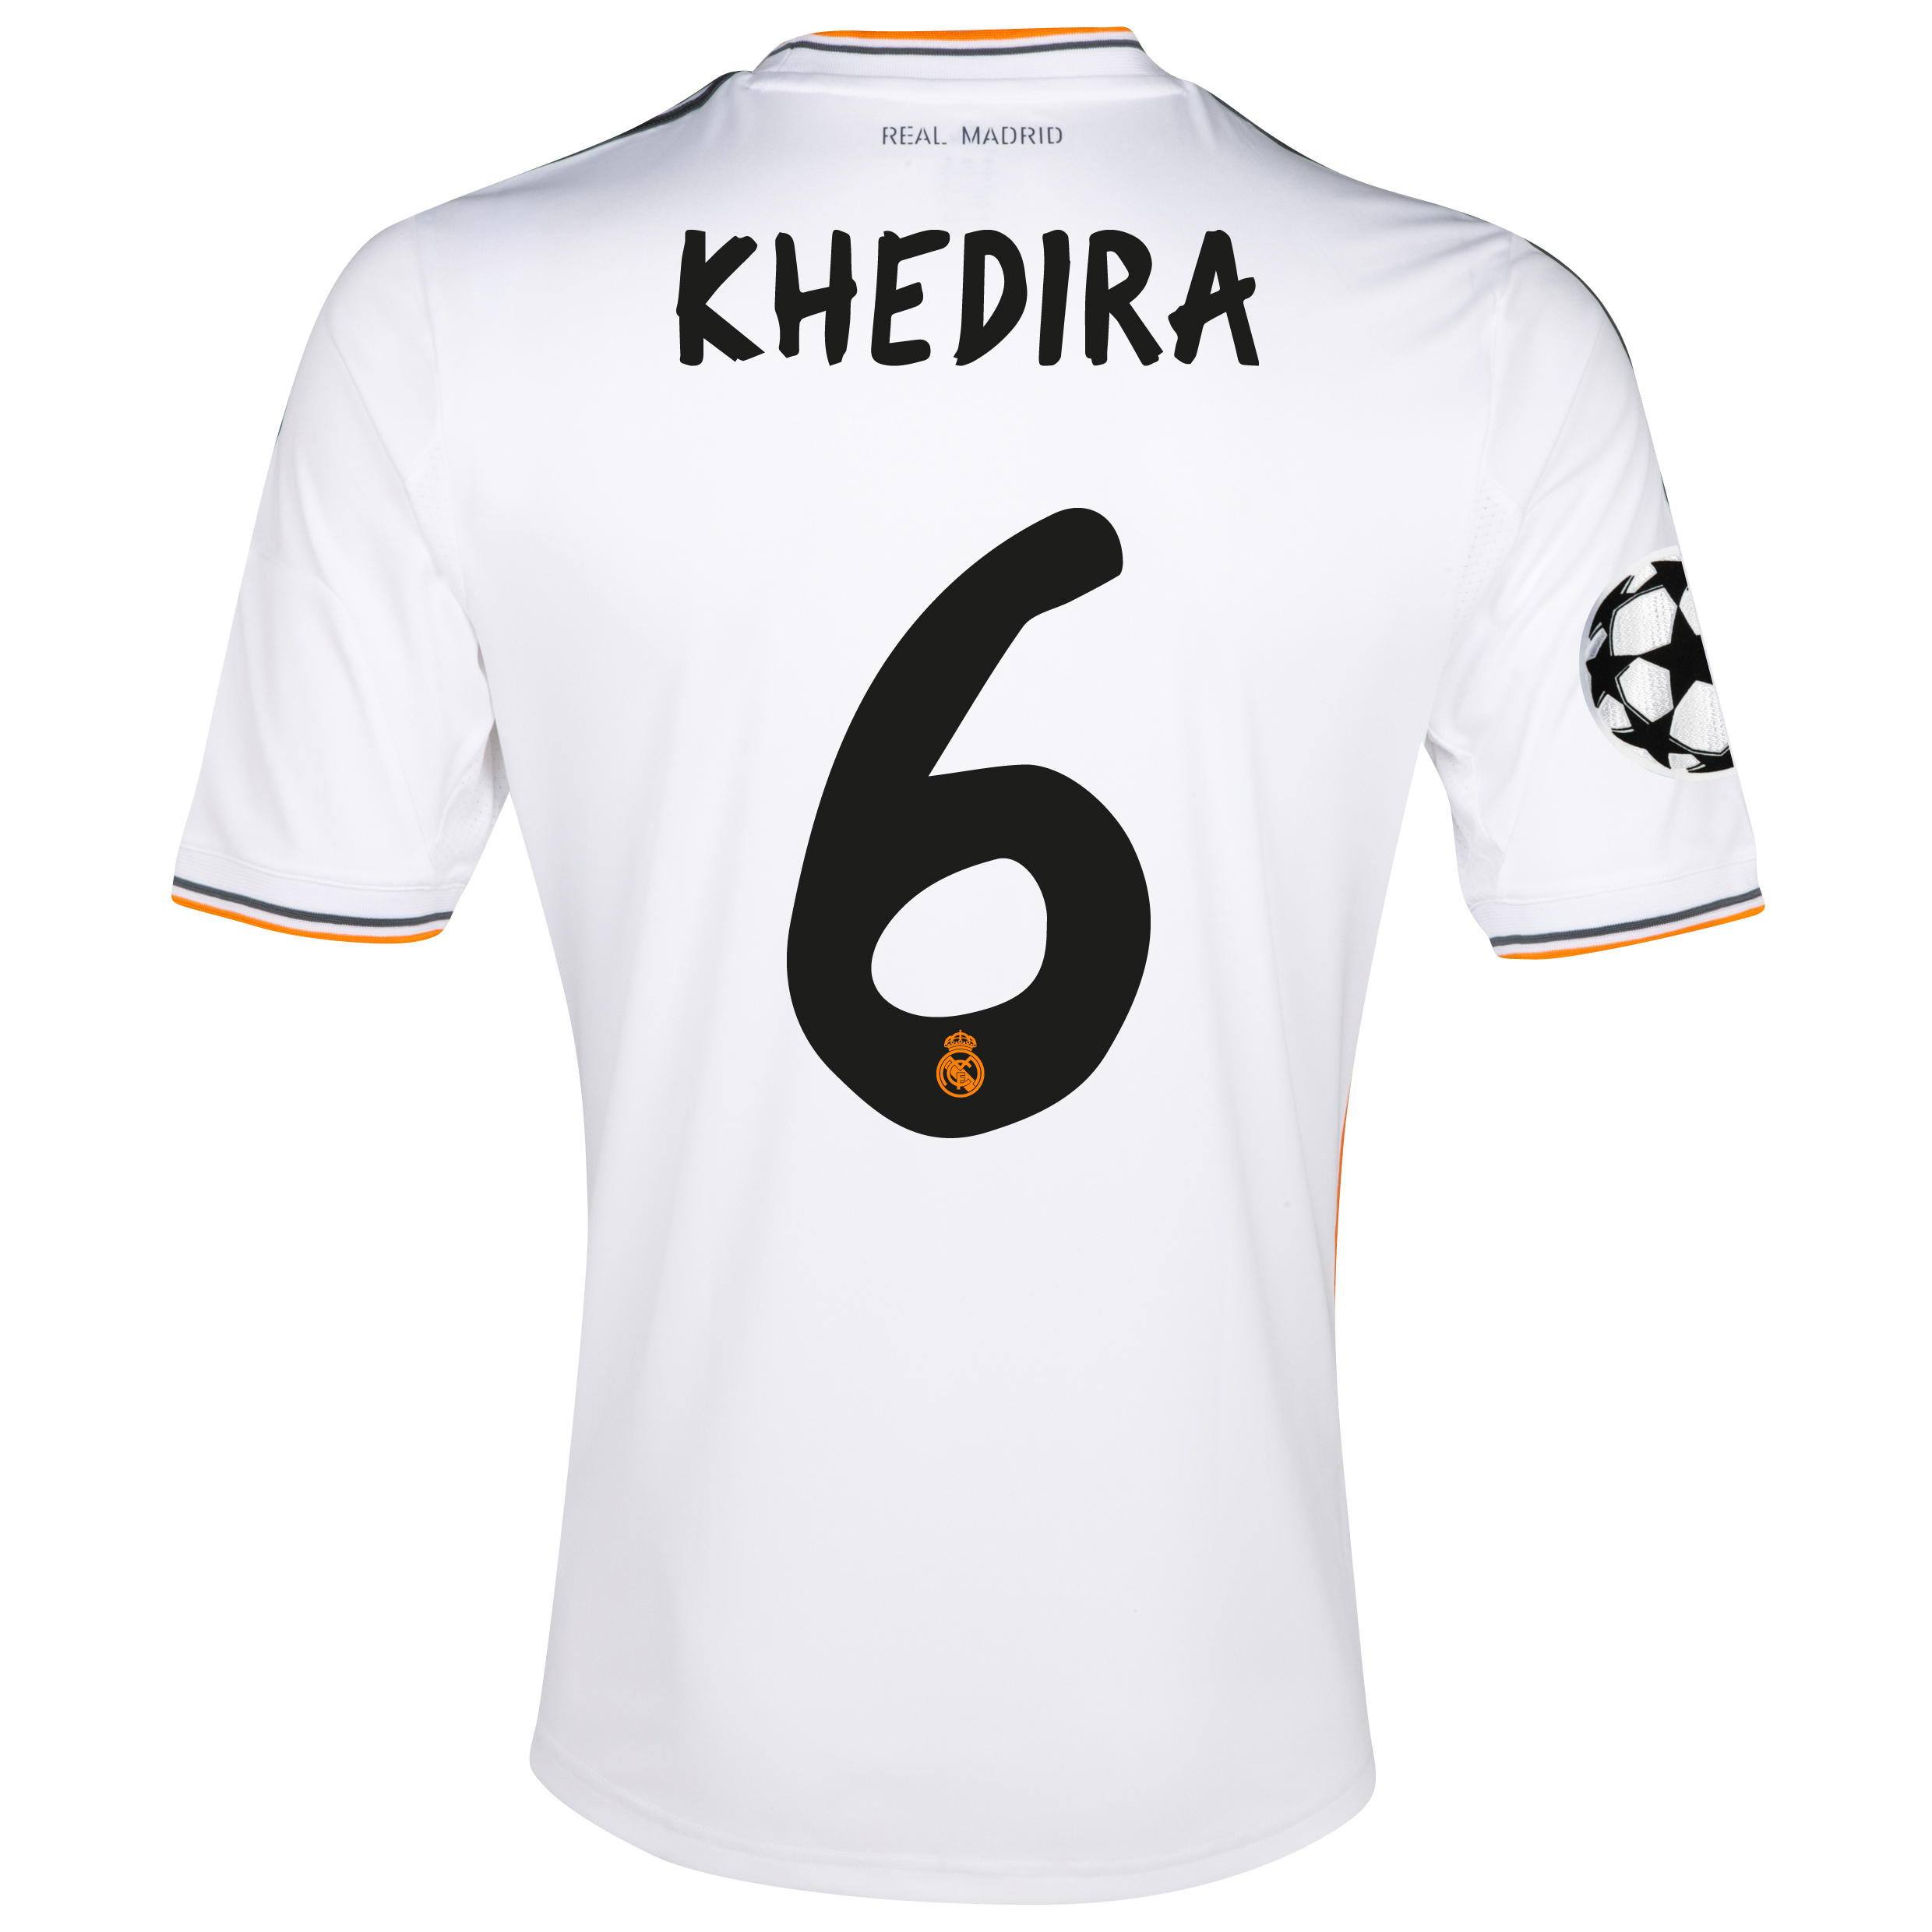 Real Madrid UEFA Champions League Home Shirt 2013/14 - kids with Khedira 6 printing